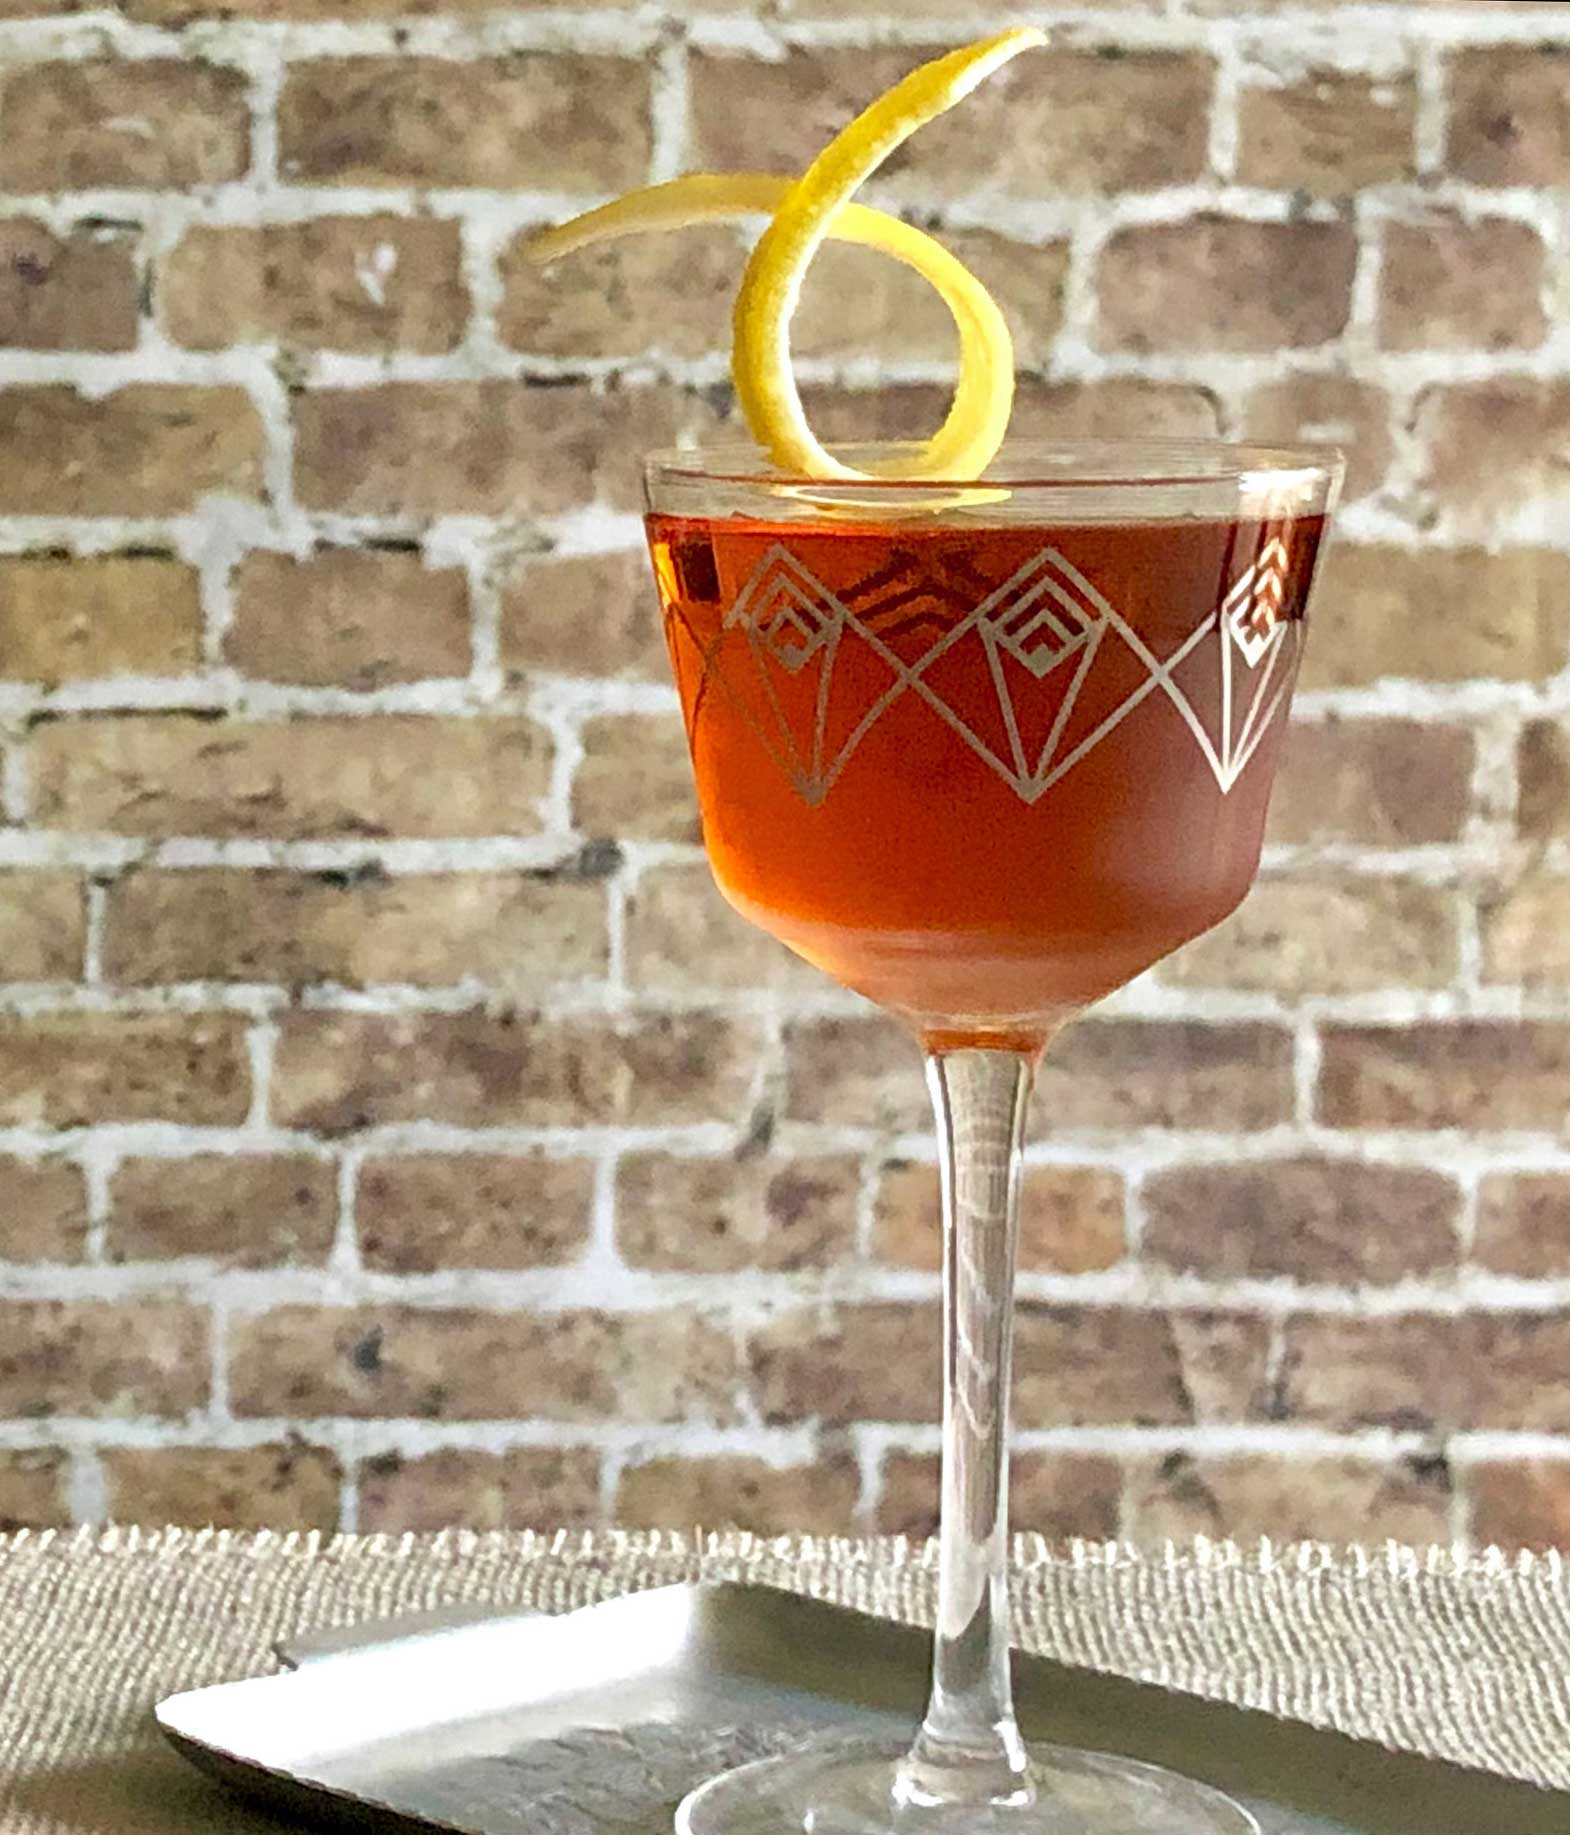 An example of the Southampton, the mixed drink (cocktail), variation of a drink from David Embury, The Fine Art of Mixing Drinks, featuring cognac, Rothman & Winter Orchard Cherry Liqueur, and Angostura bitters; photo by Lee Edwards